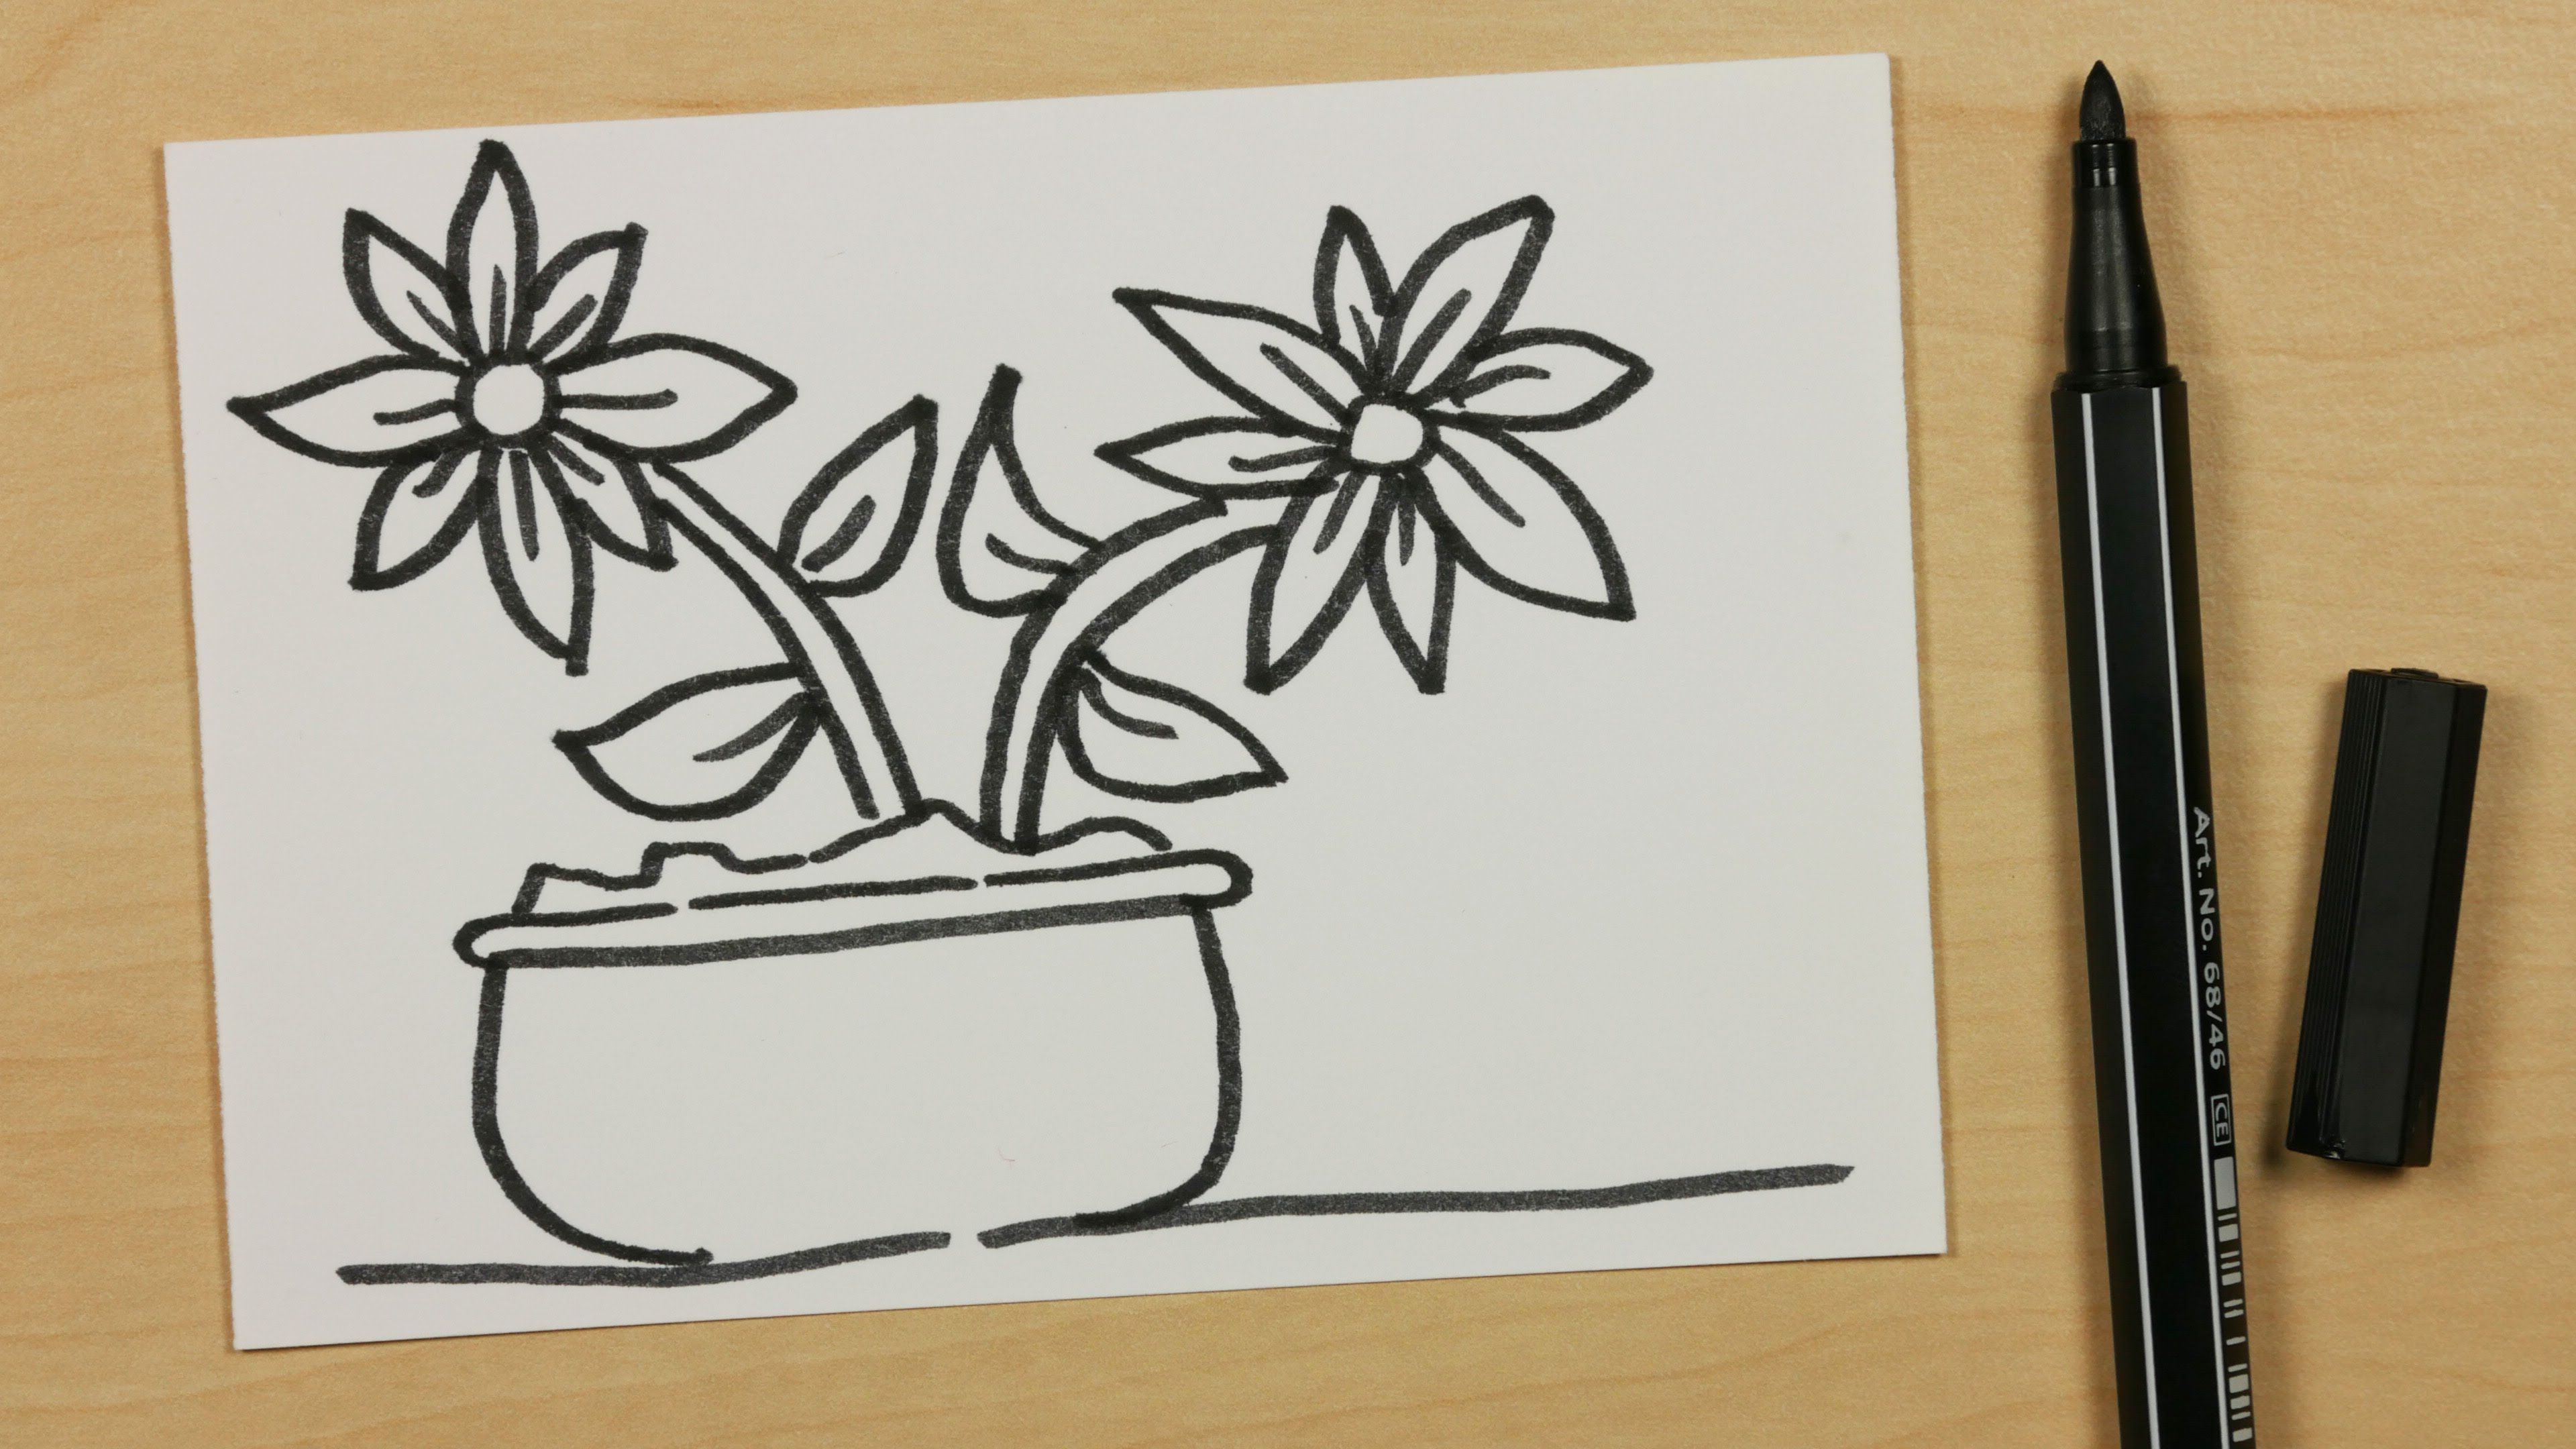 3840x2160 How To Draw A Plant Pot With Two Flowers